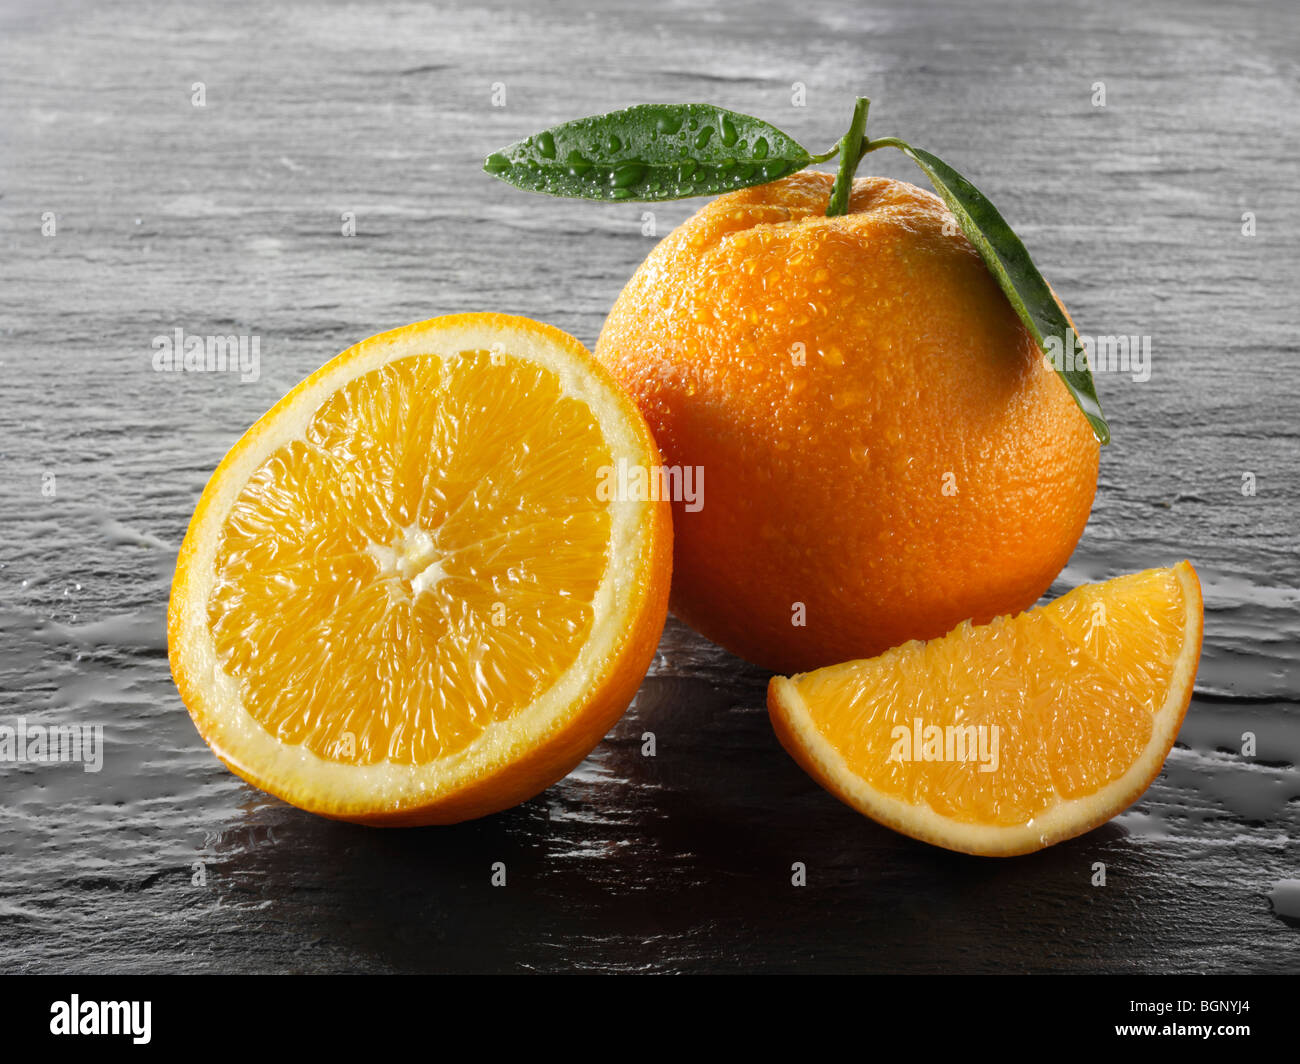 Whole and cut fresh oranges with leaves against a black background - Stock Image